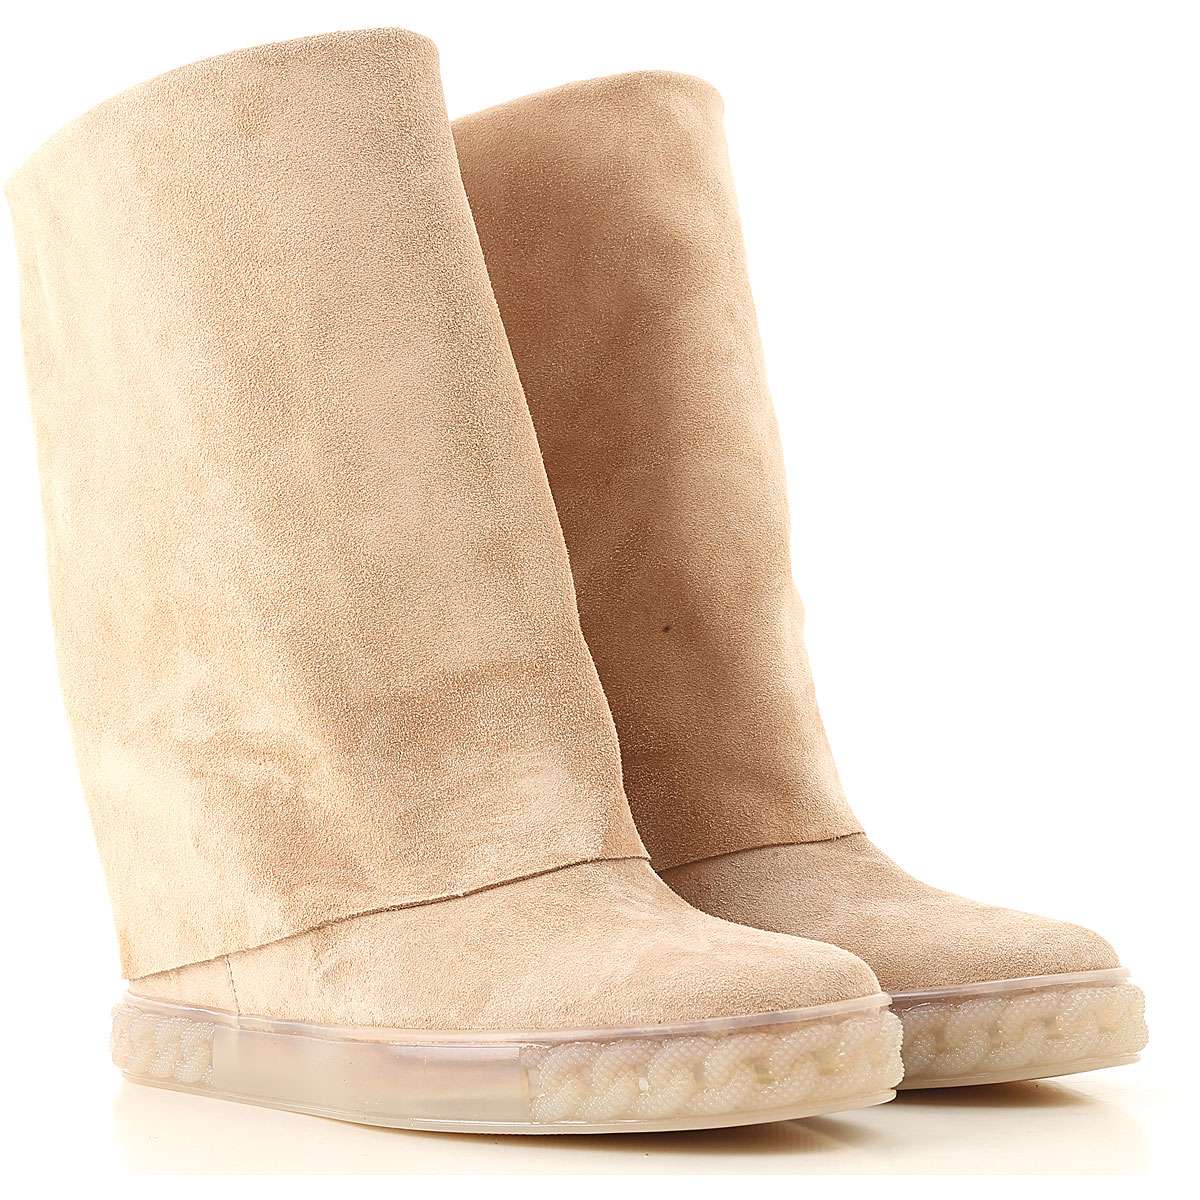 Casadei Boots for Women, Booties On Sale, cappuccino, Suede leather, 2019, 6 6.5 7 8 9